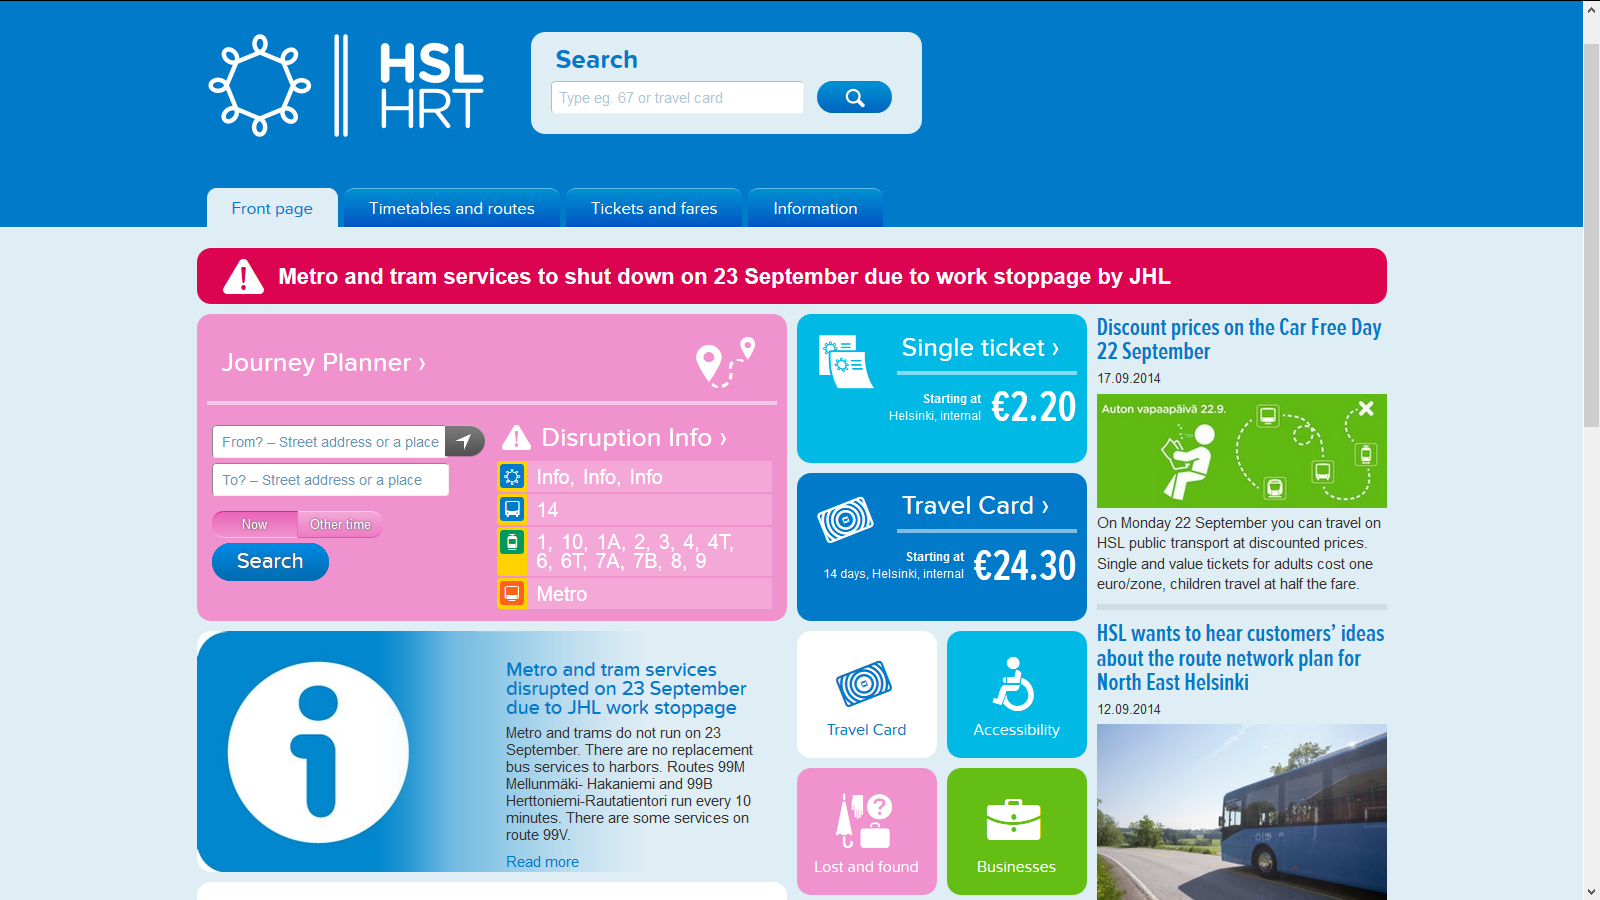 Strike information on the HSL website